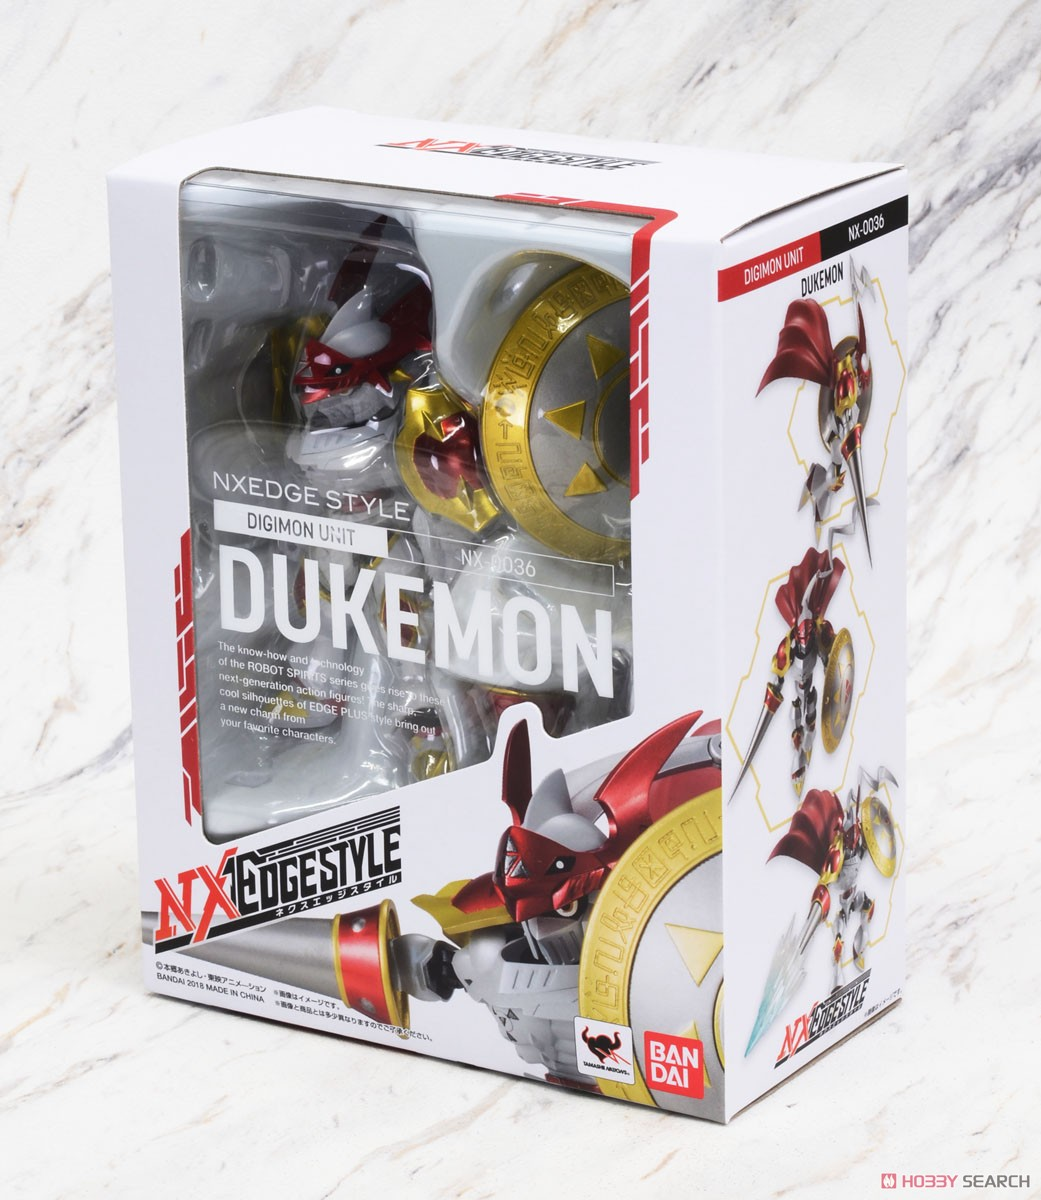 Nxedge Style [Digimon Unit] Dukemon (Completed)